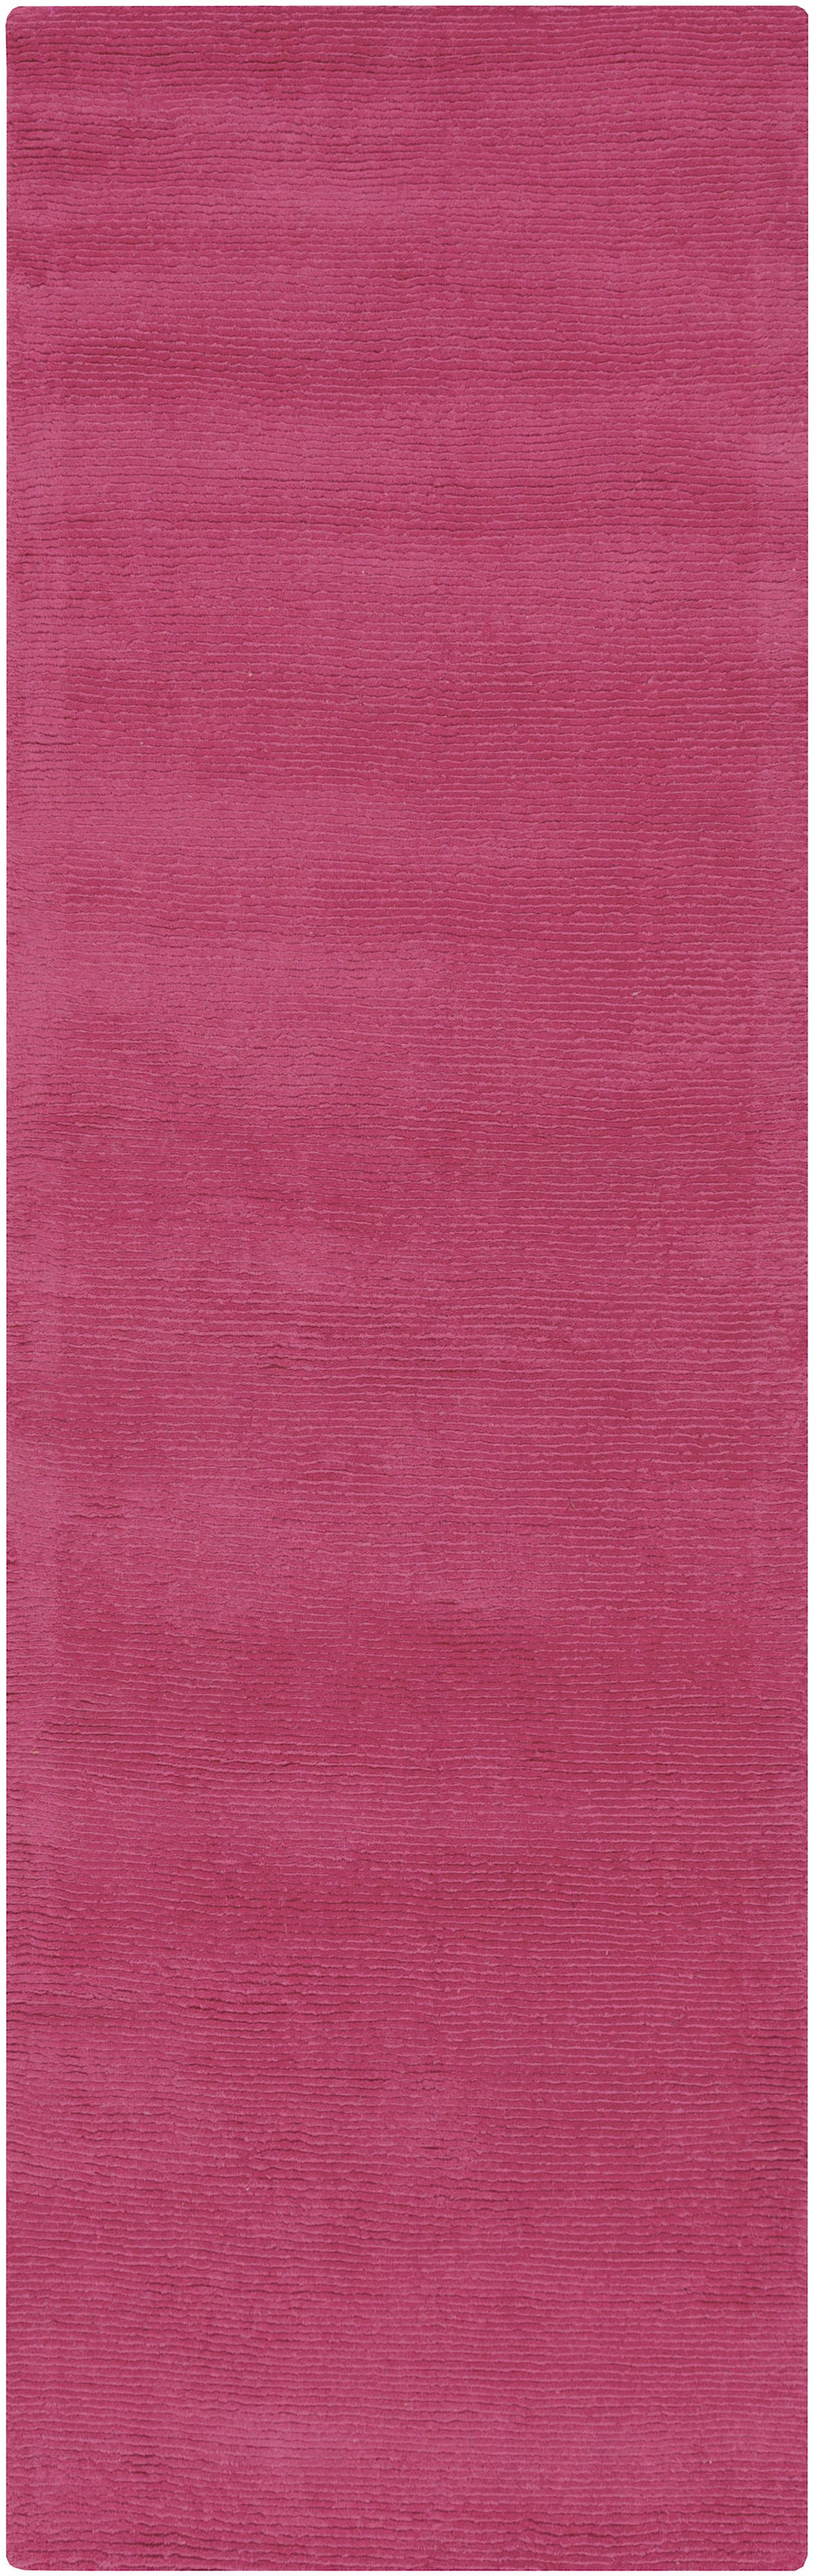 "Surya Rugs Mystique 2'6"" x 8' - Item Number: M5327-268"